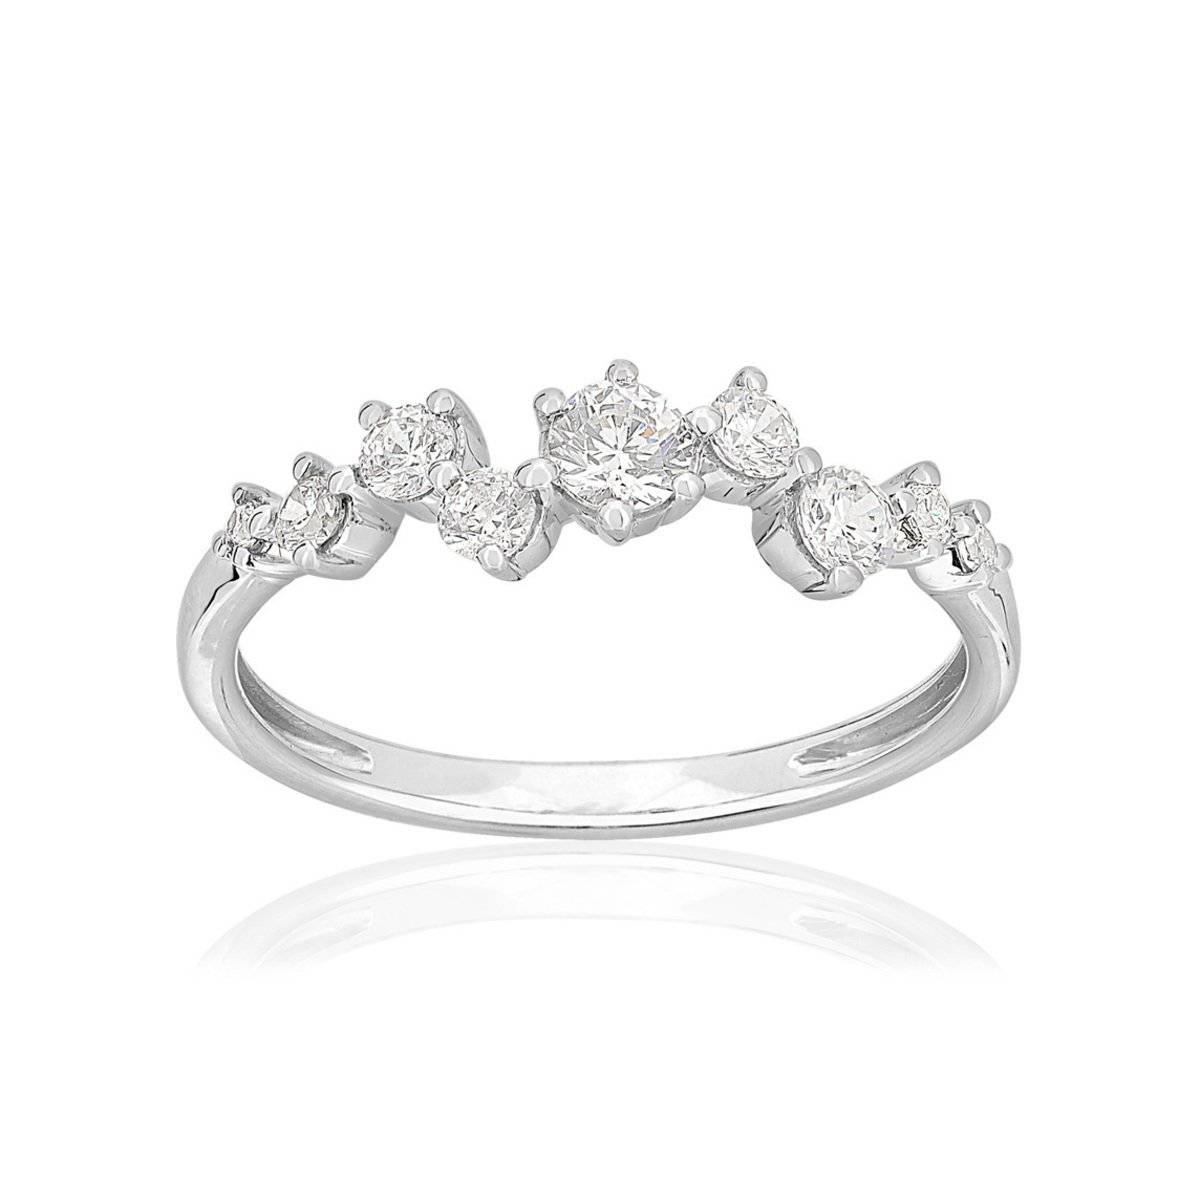 MATY Bague or 750 blanc diamants synthétiques 0,46 carat- MATY